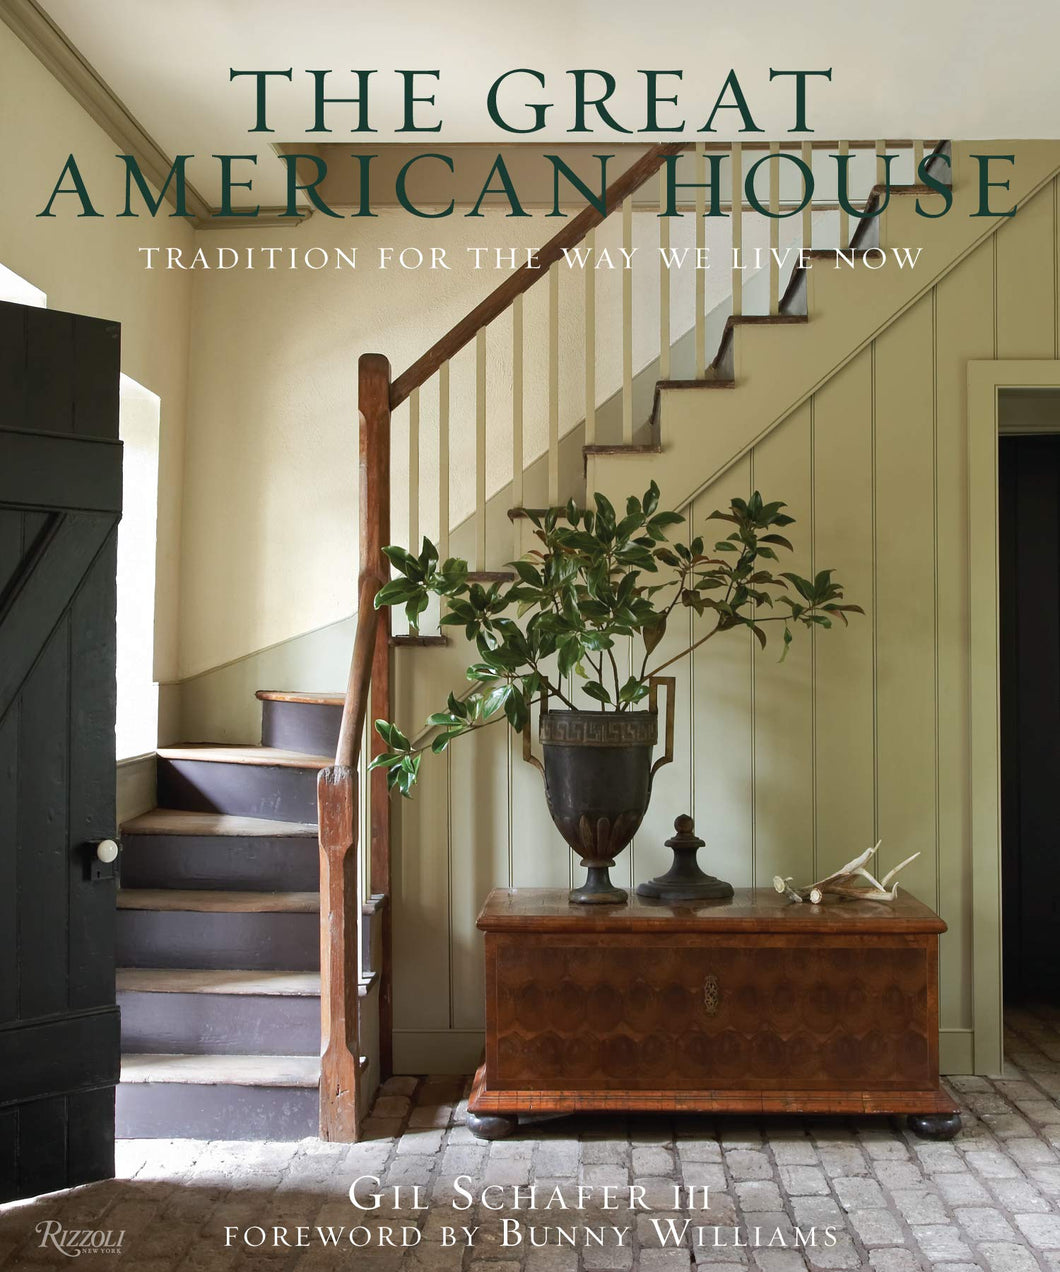 The Great American House - Tradition for the Way We Live Now